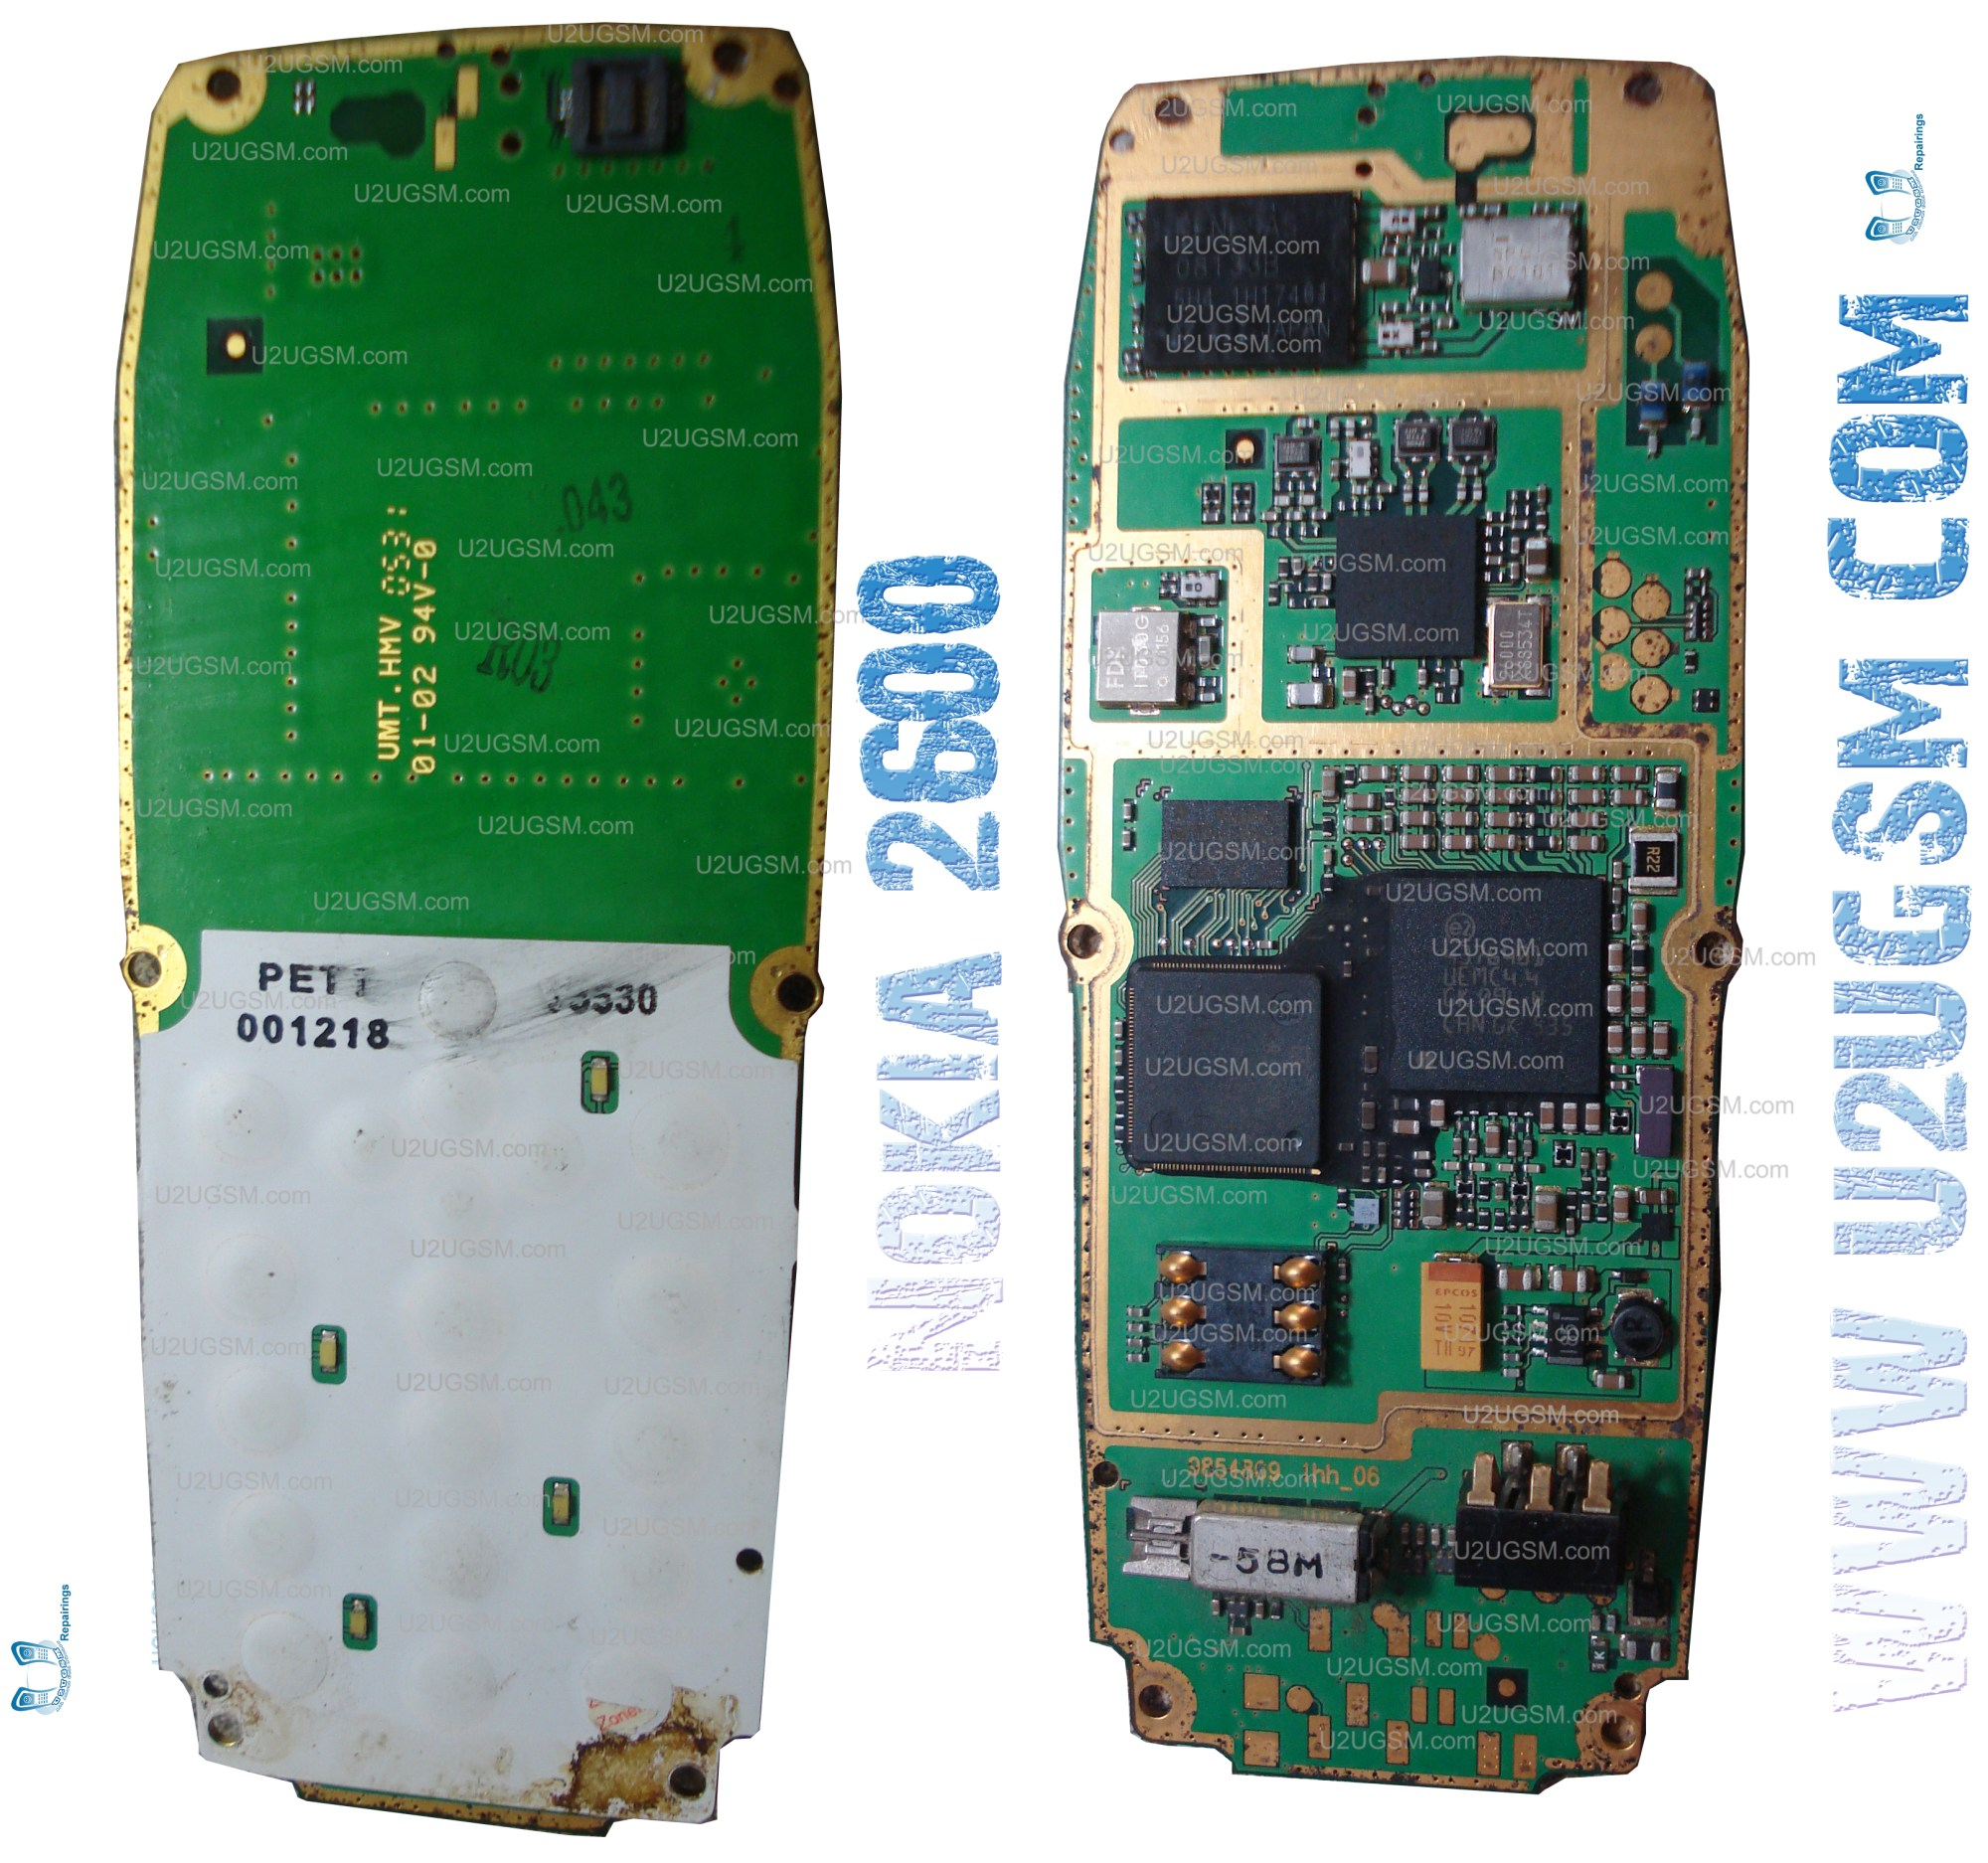 hight resolution of nokia 2600 full pcb diagram mother board layout circuit diagram nokia 1100